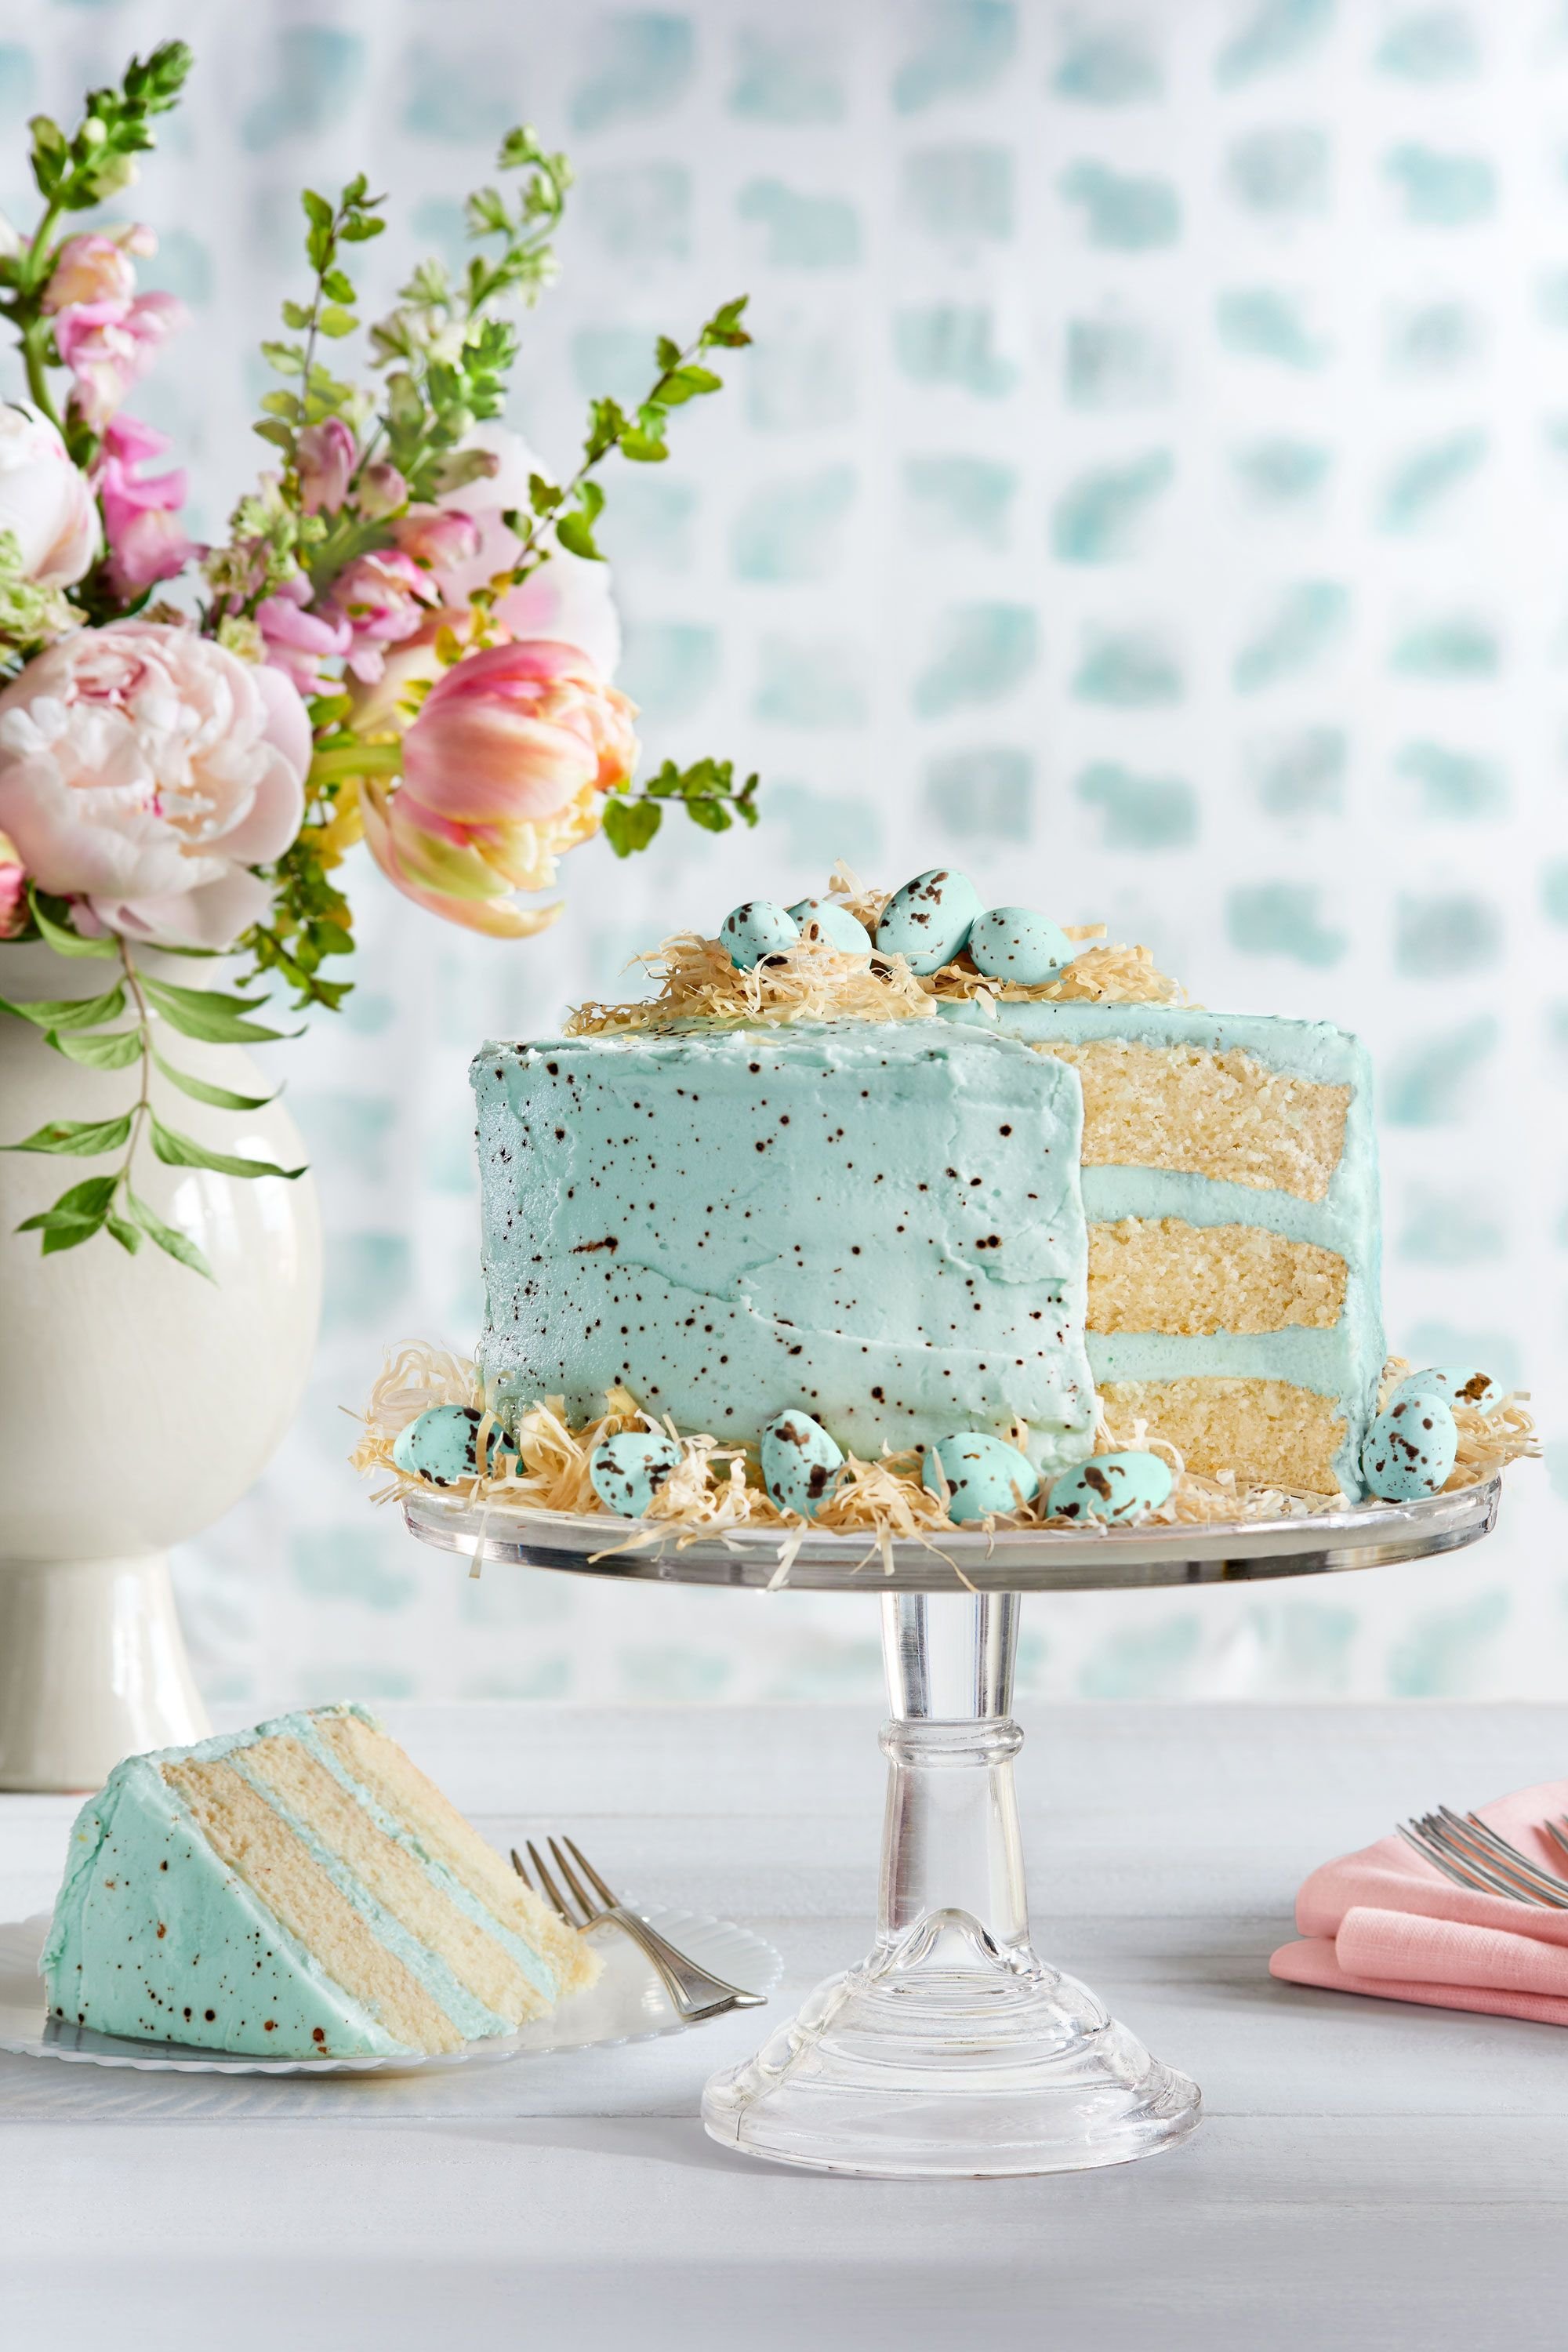 15 Beautiful Cake Decorating Ideas